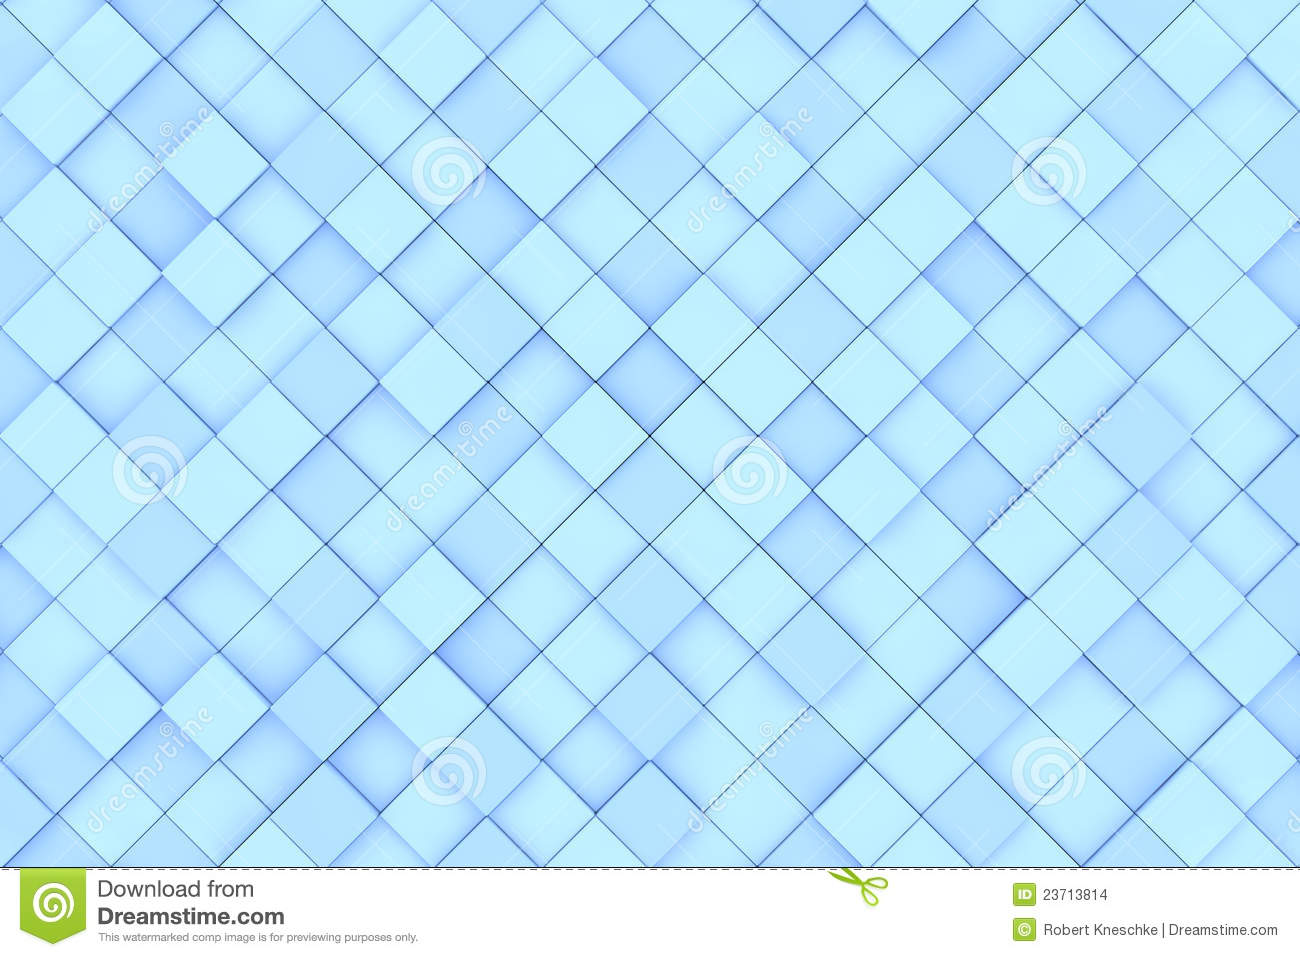 Blue square pattern background - photo#6